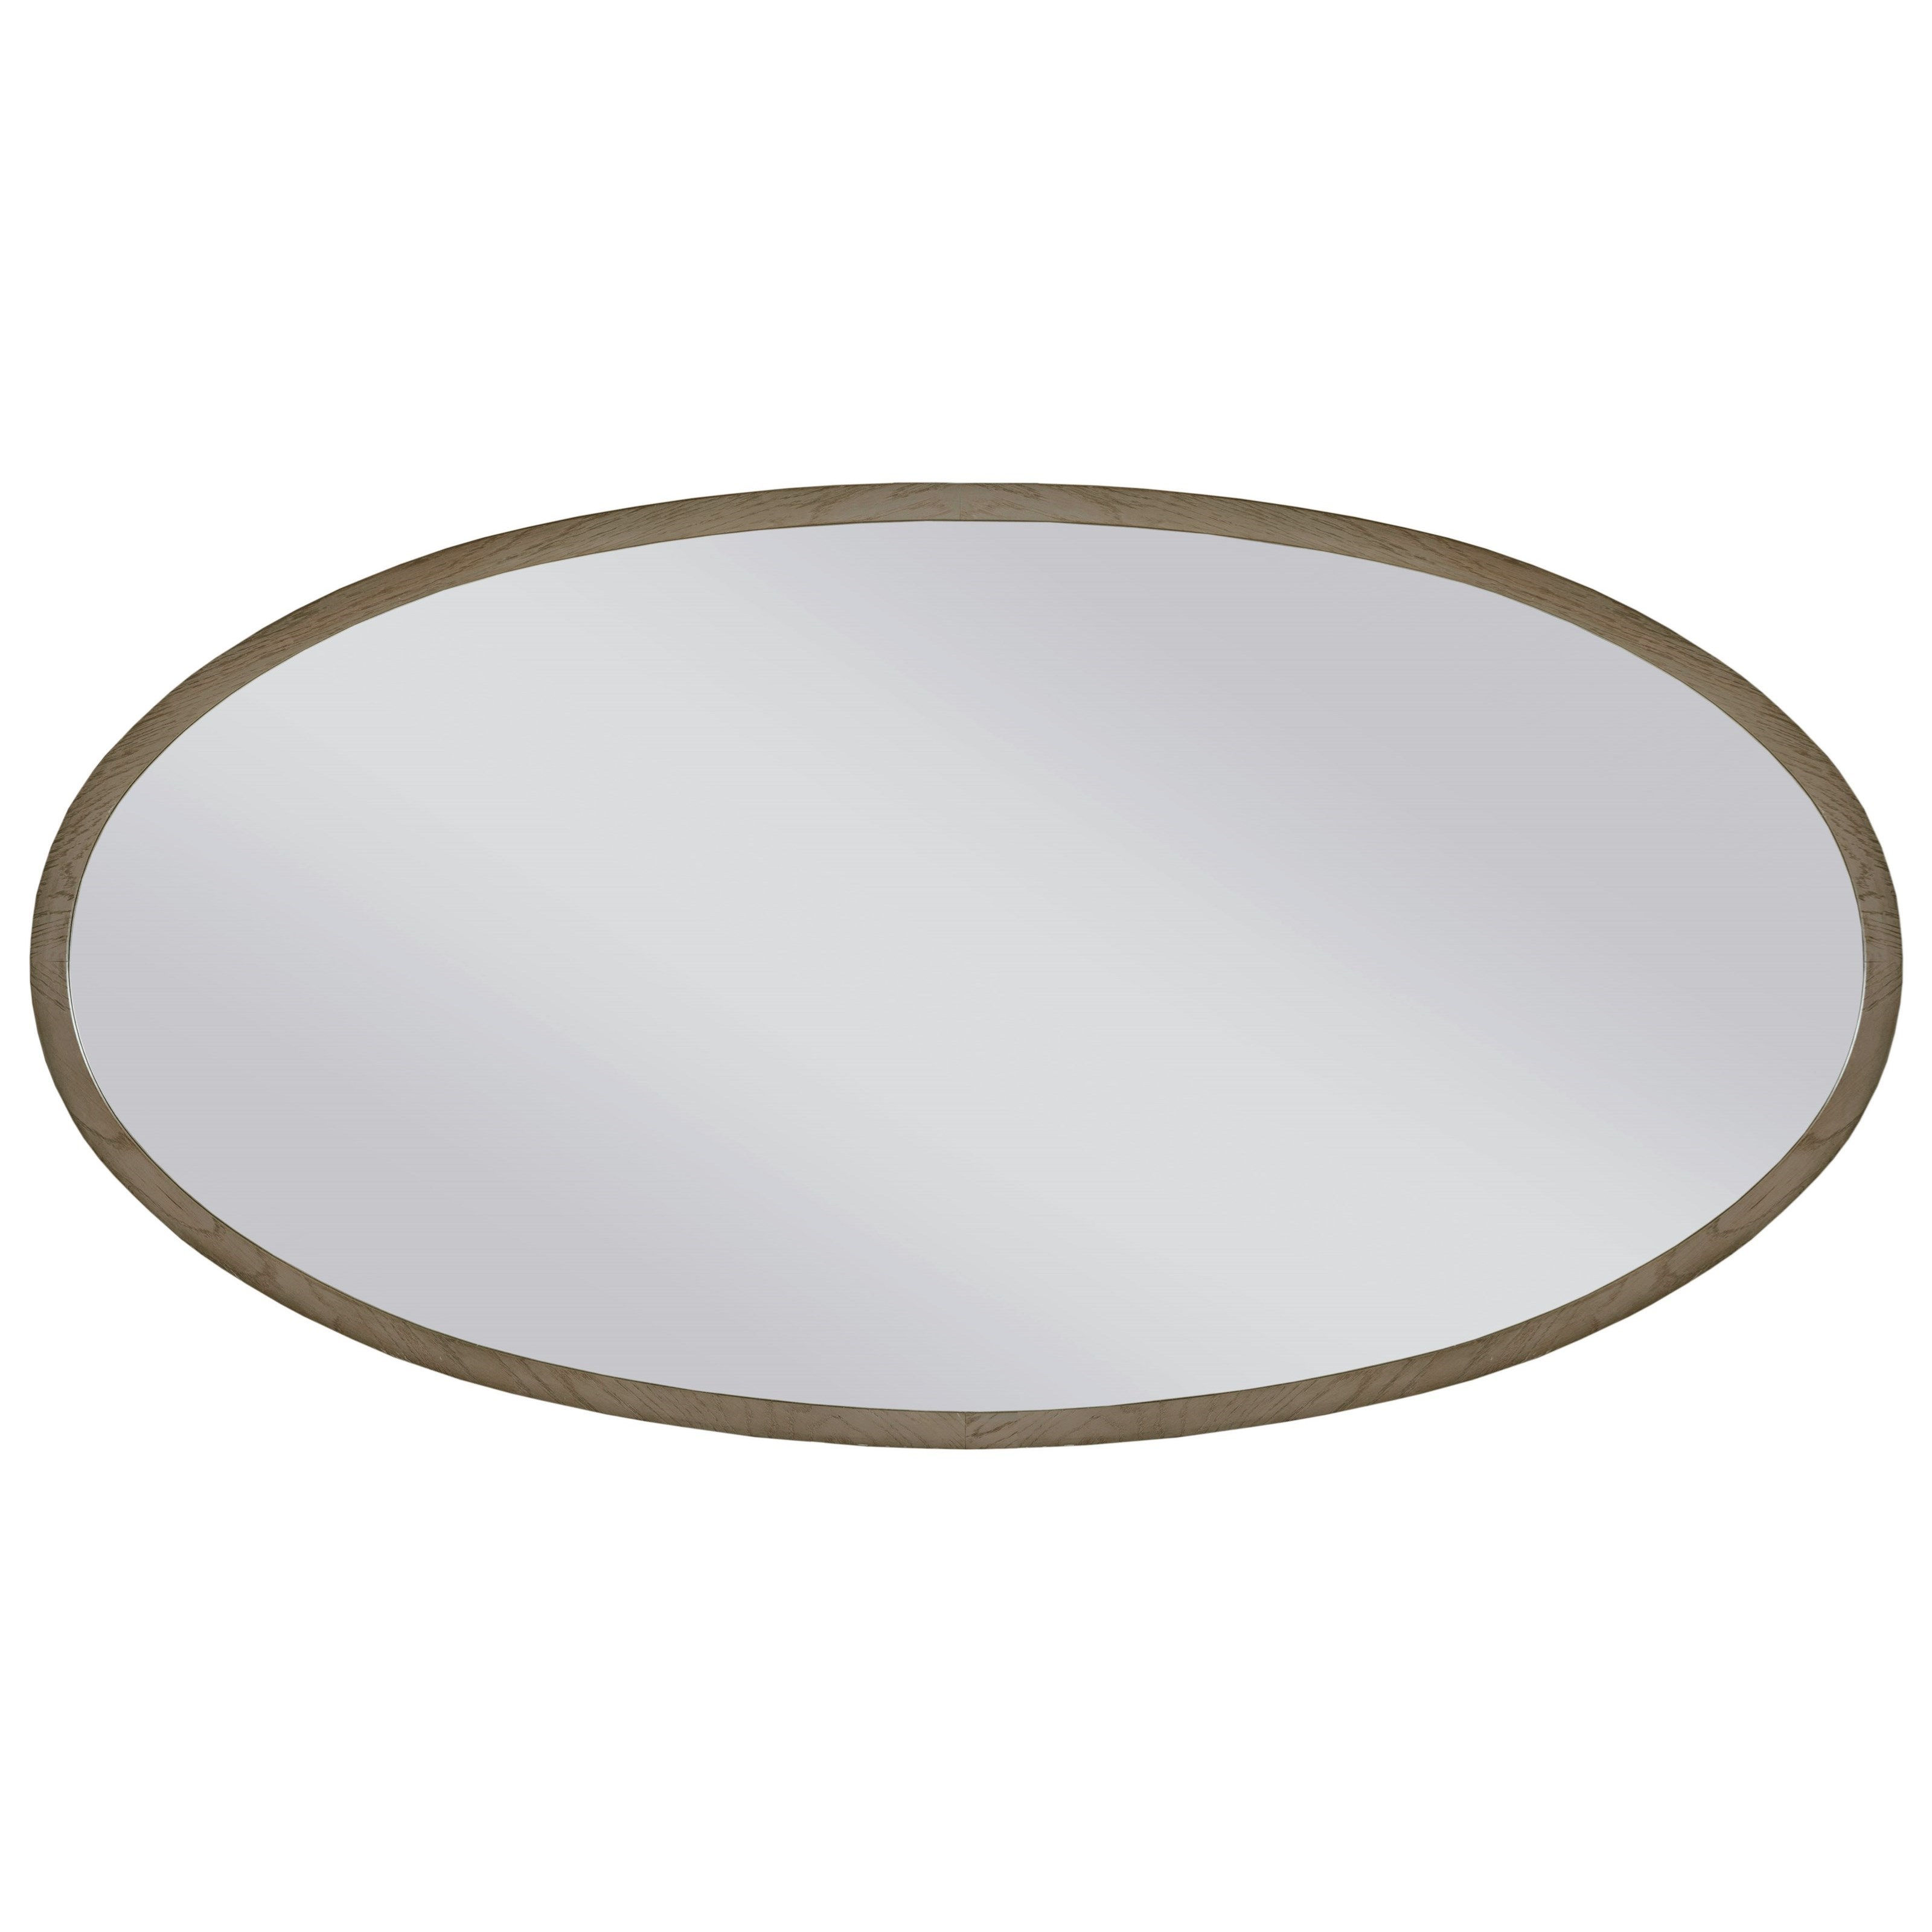 Ad Modern Classics Ramsey Oval Mirror by Living Trends at Sprintz Furniture